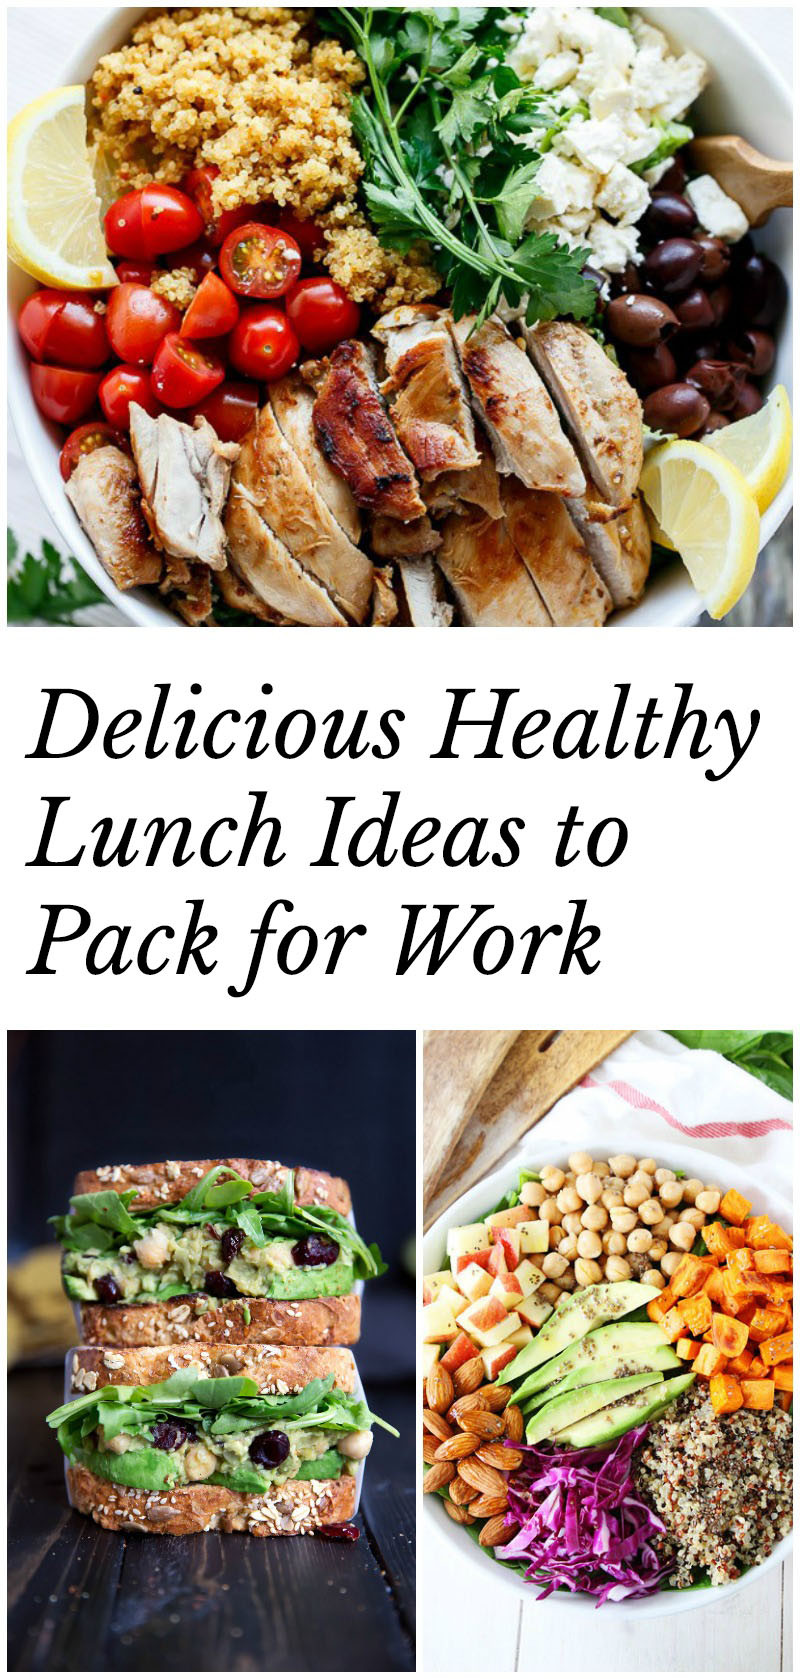 Fast Healthy Lunches For Work  Healthy Lunch Ideas to Pack for Work 40 recipes